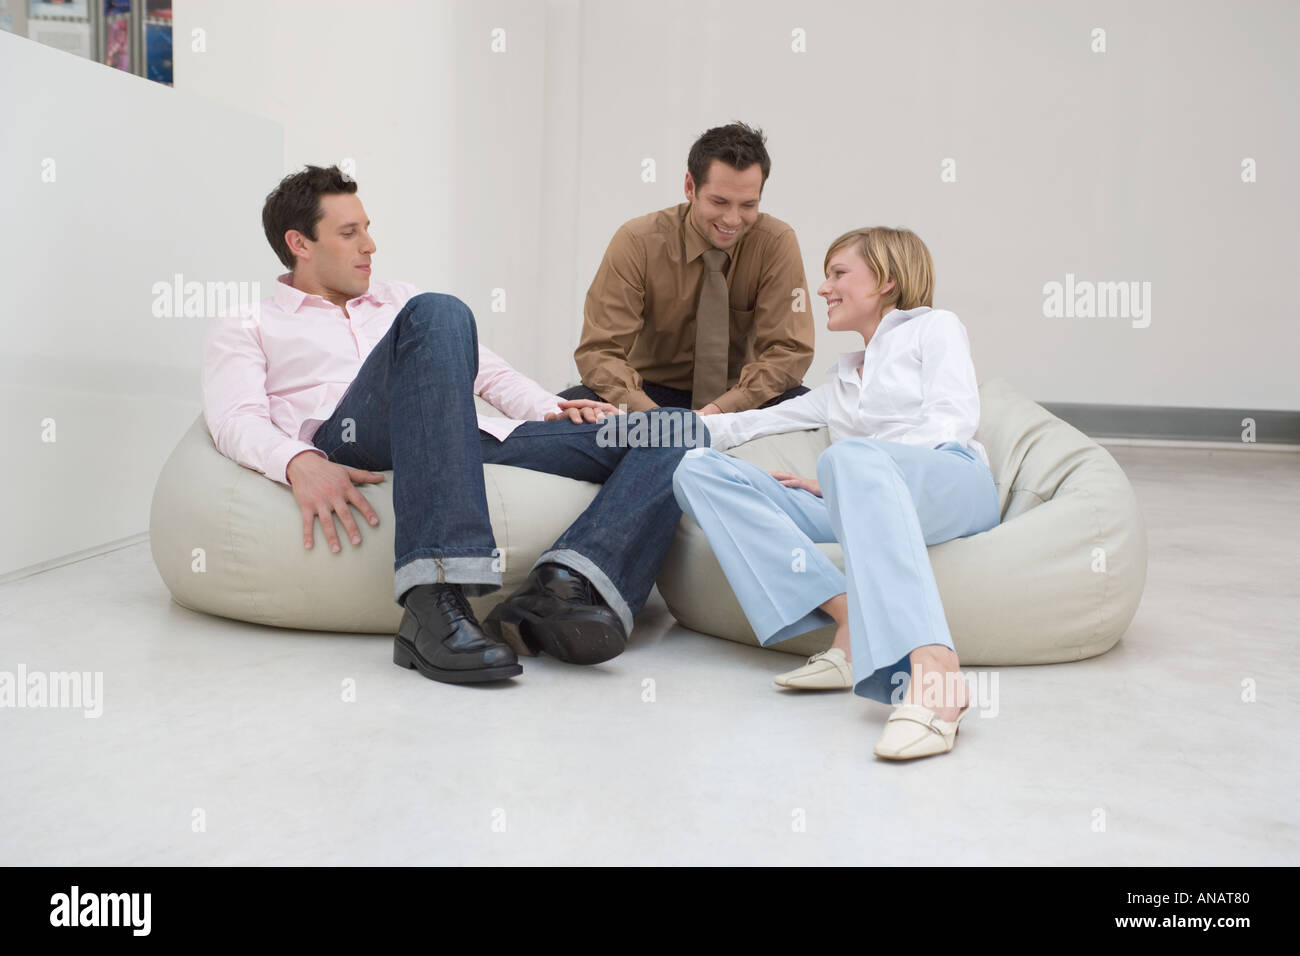 three people sitting on bean bags having a conversation in relaxed office area - Stock Image